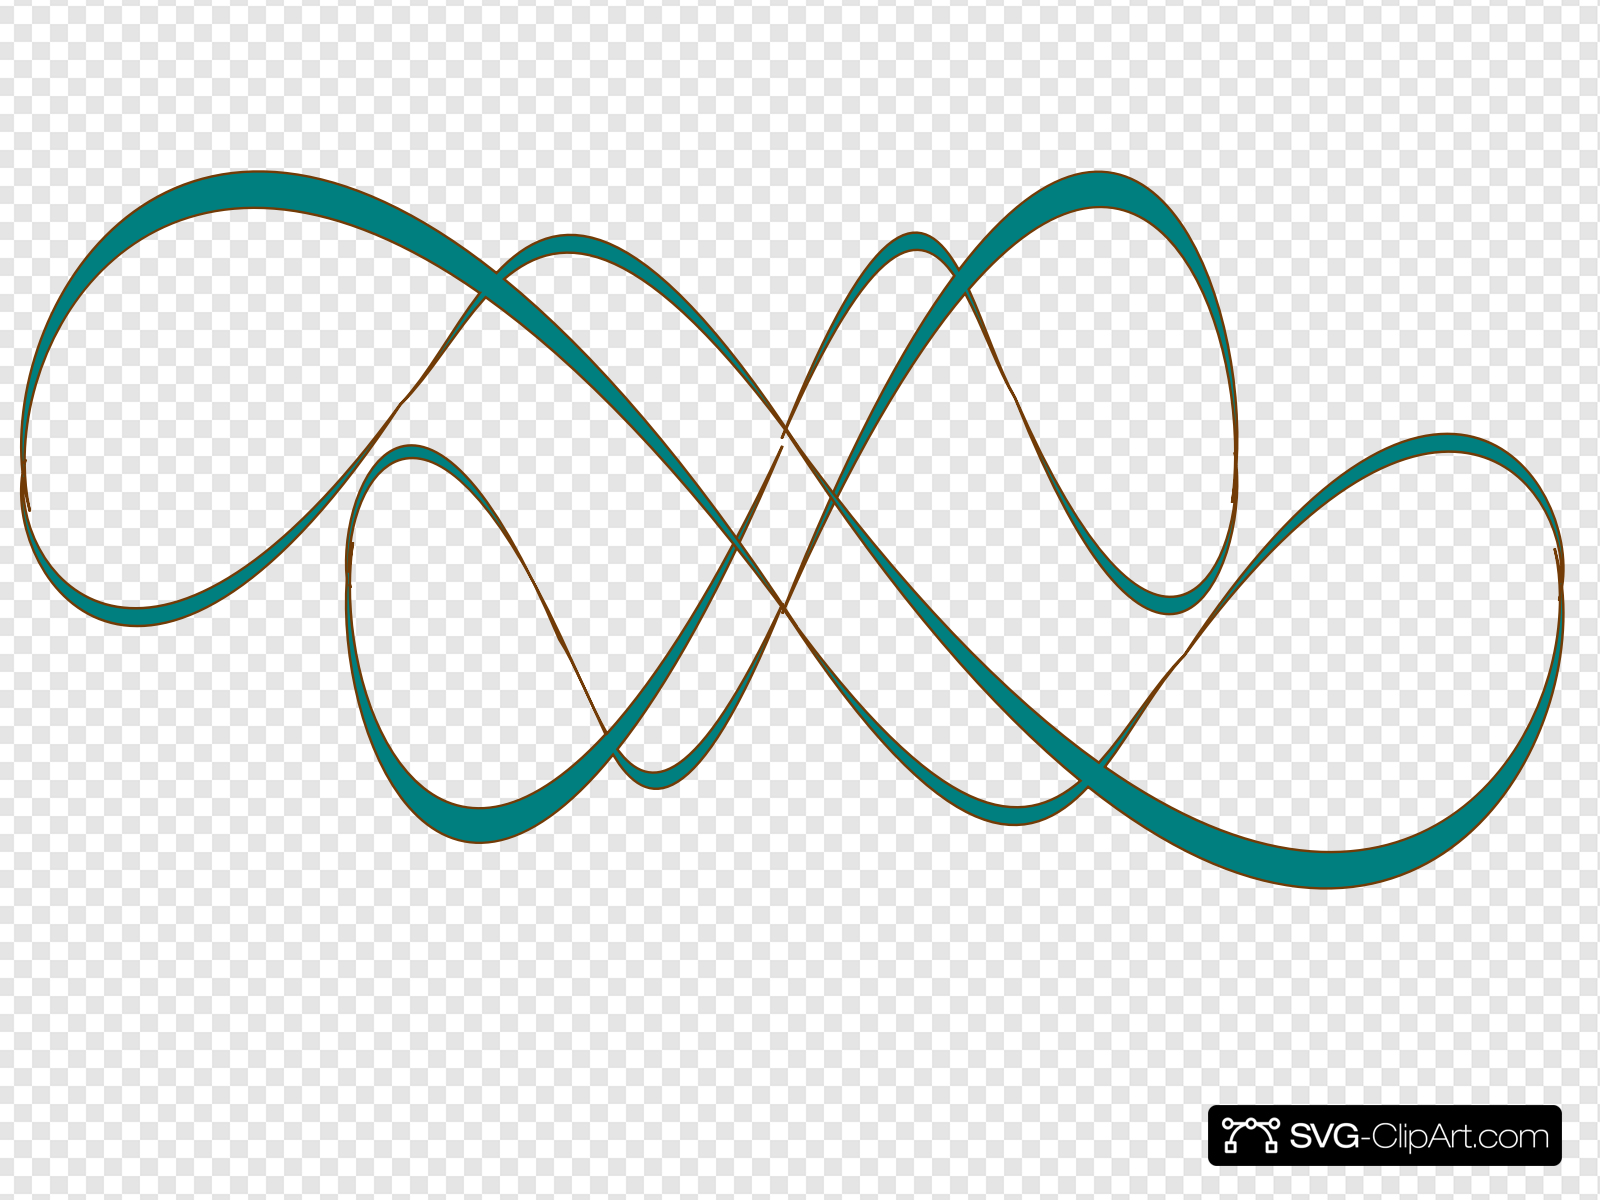 Teal Swirl Clip art, Icon and SVG.